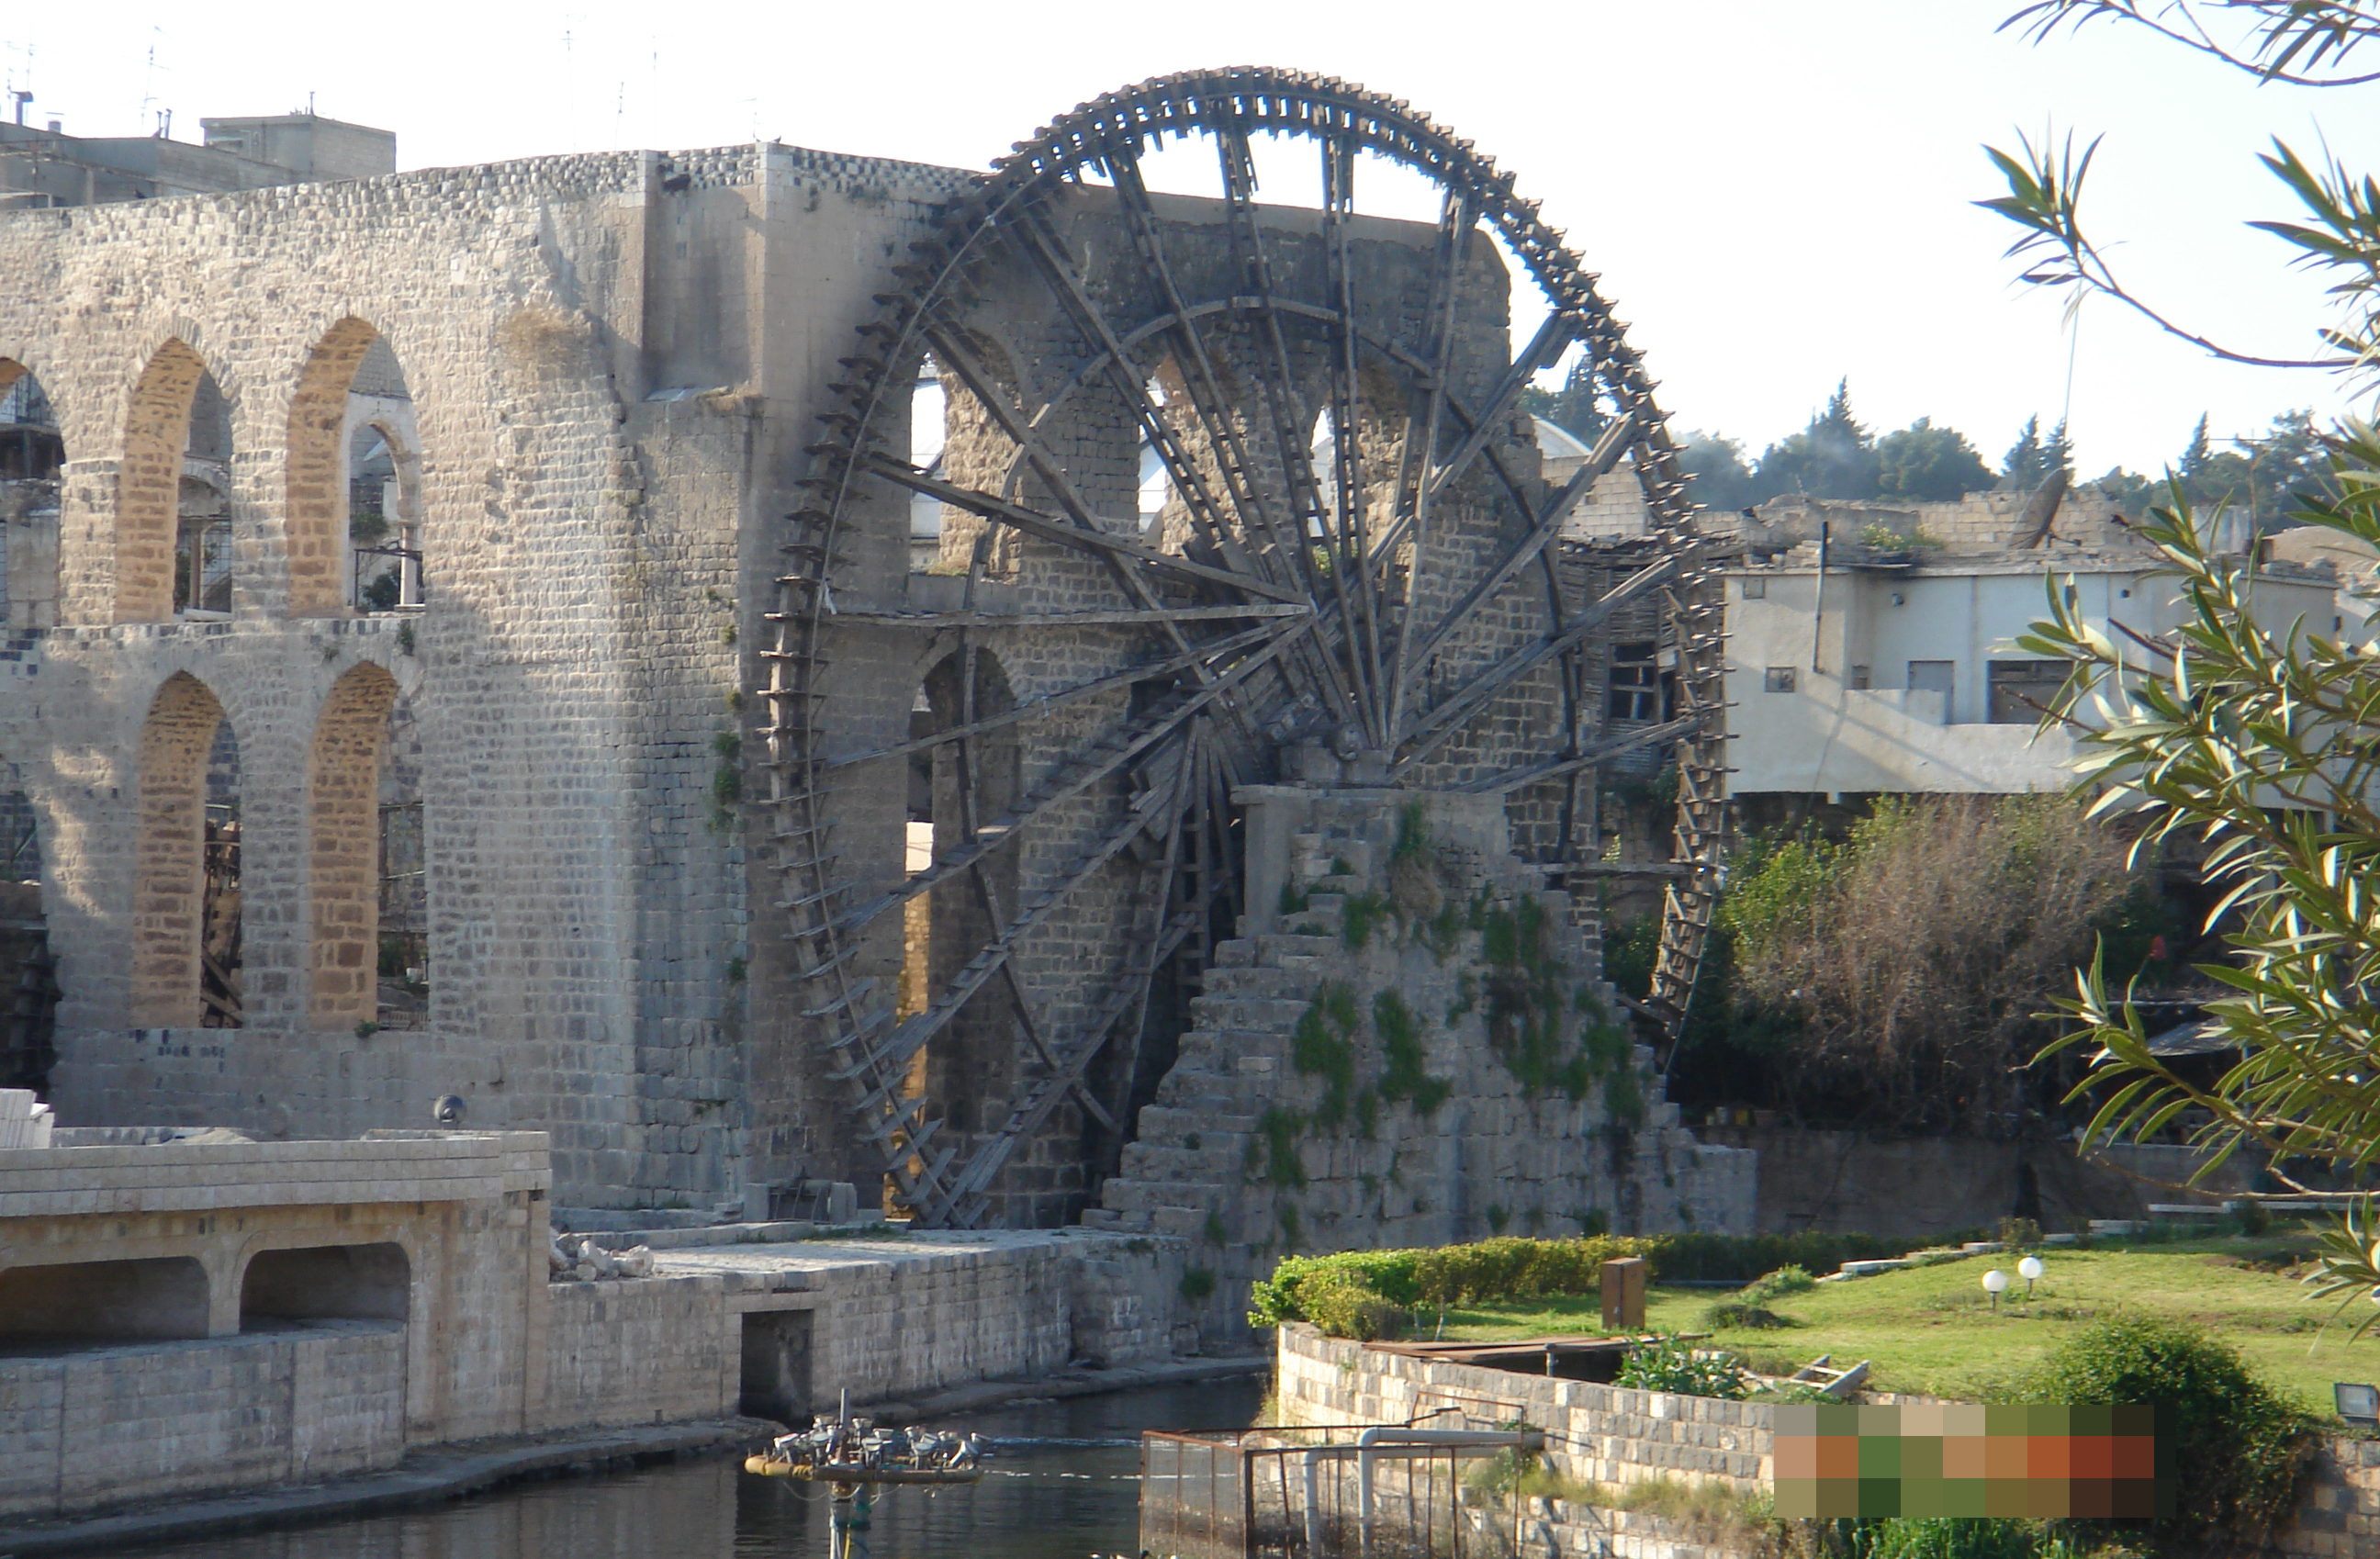 Waterwheel (Naura) in Hama, Syria